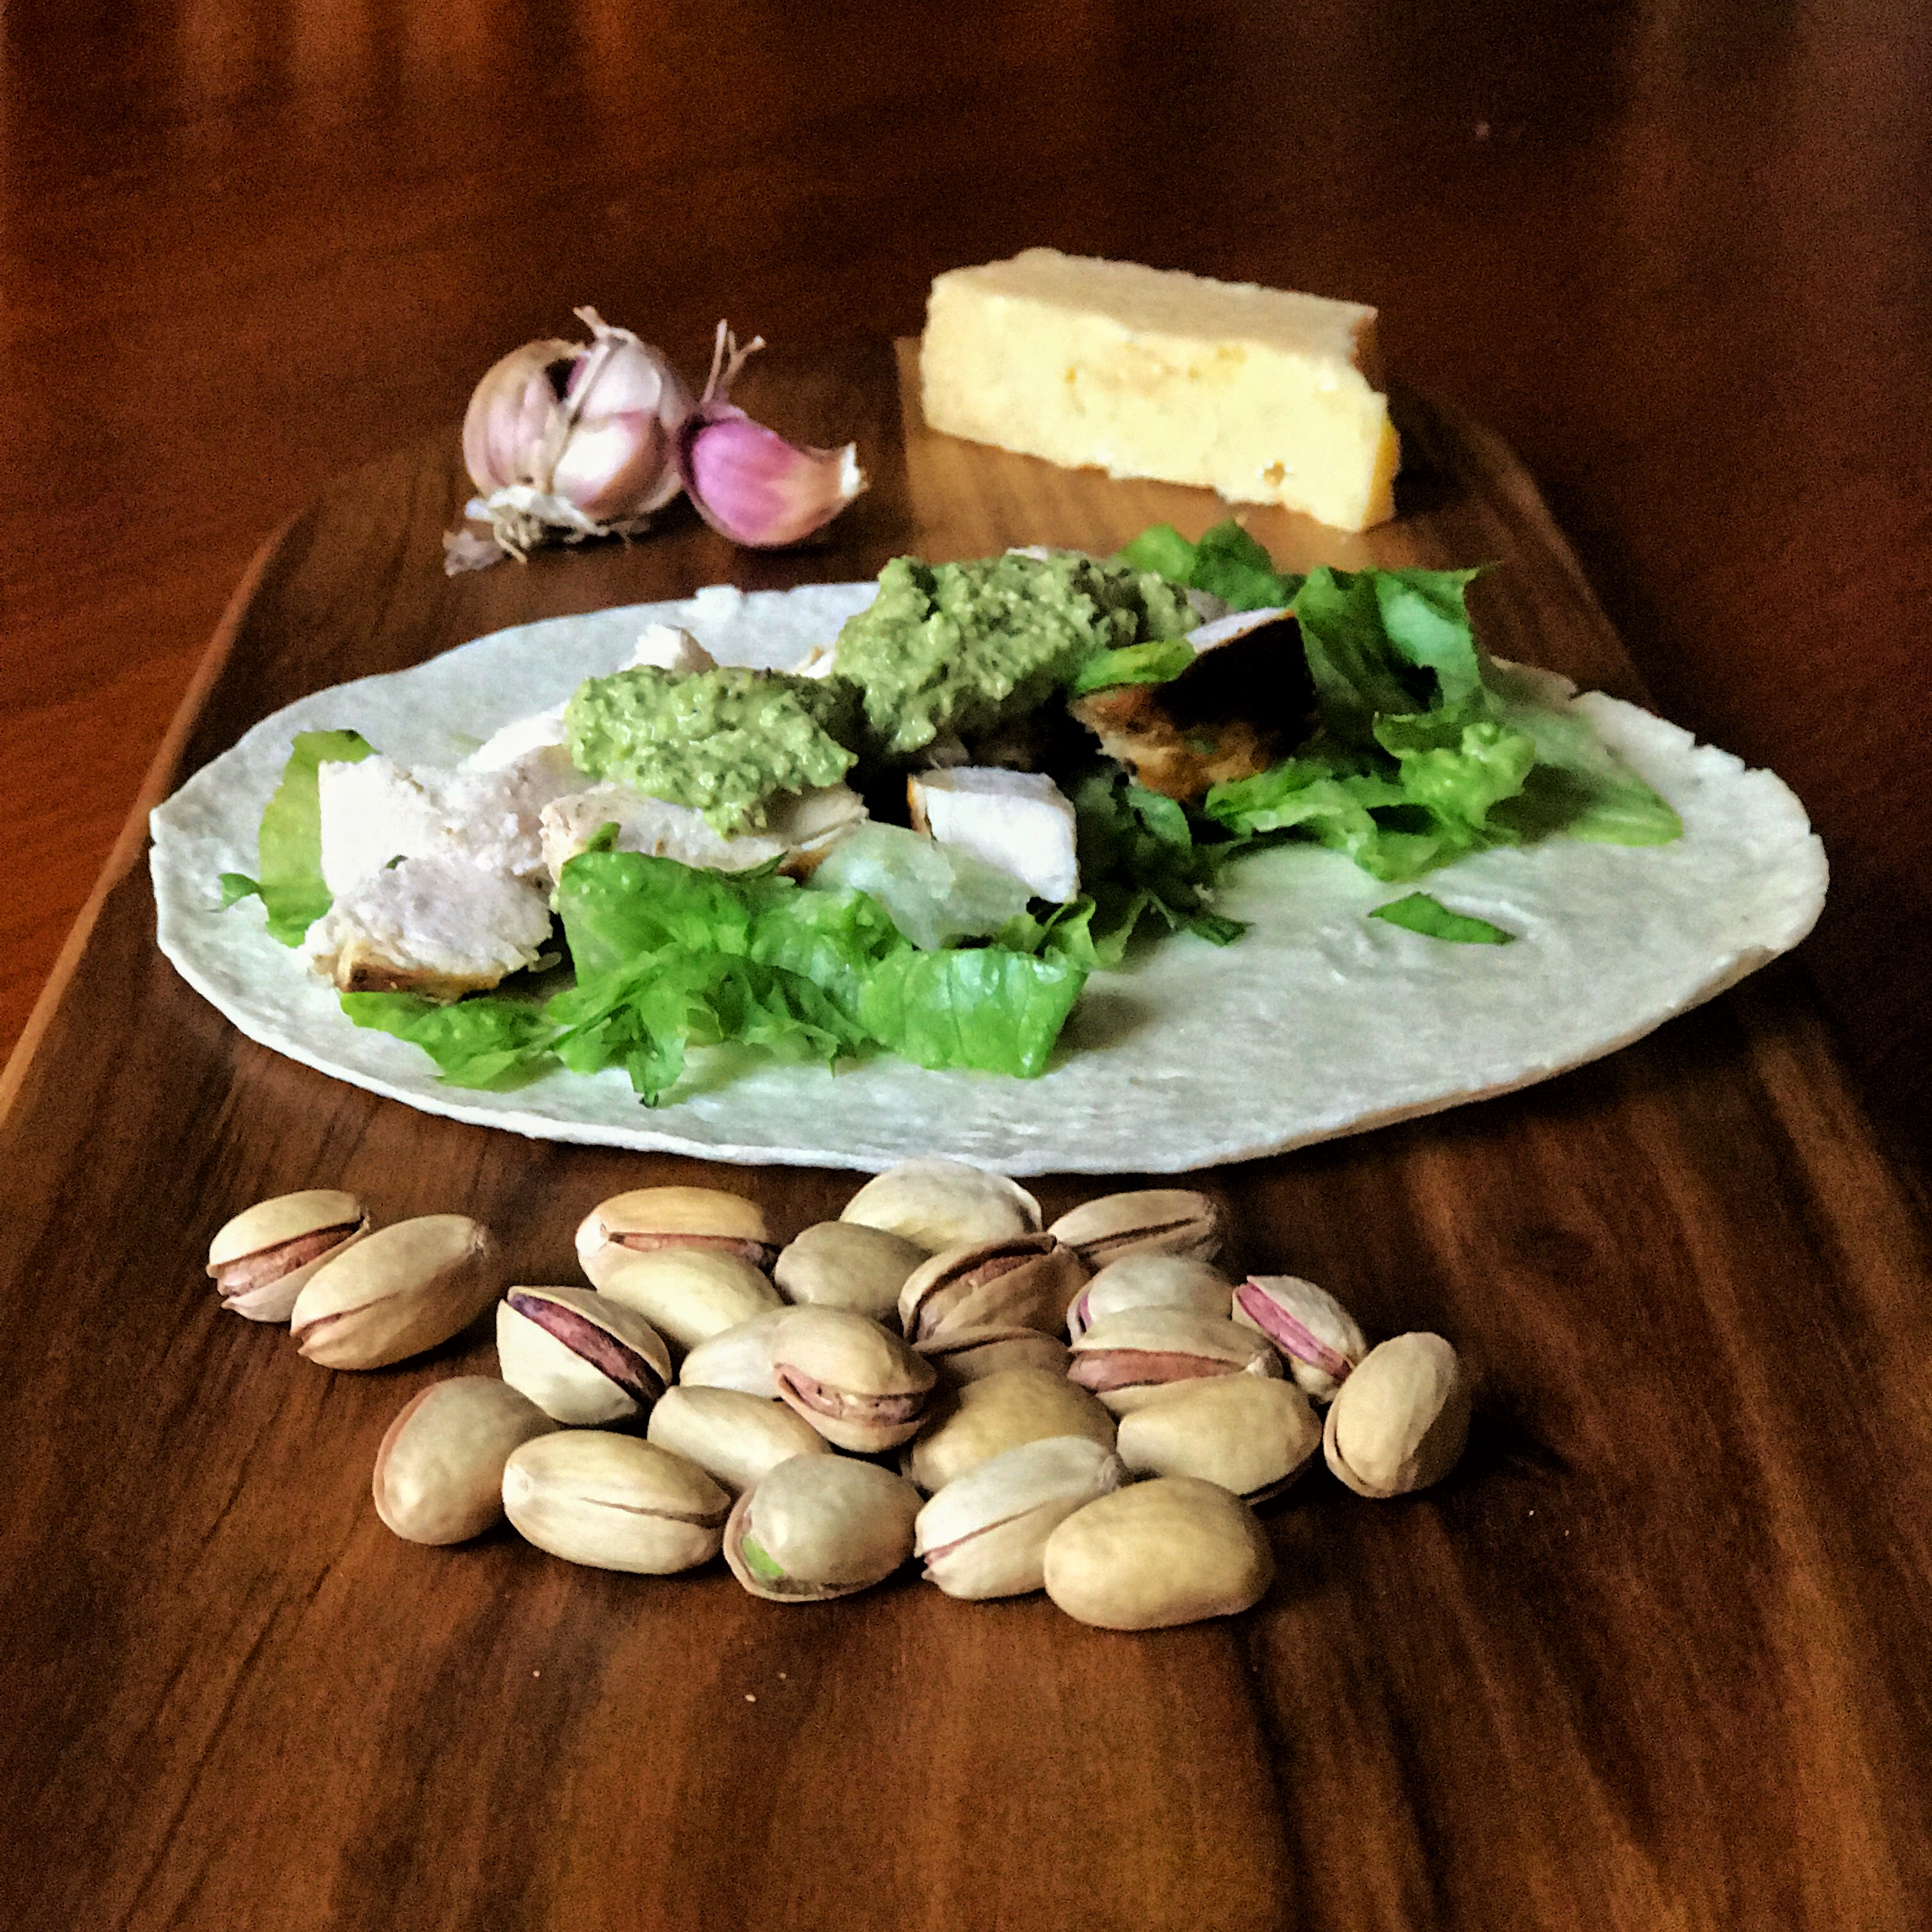 Tasty ideas with pistachios